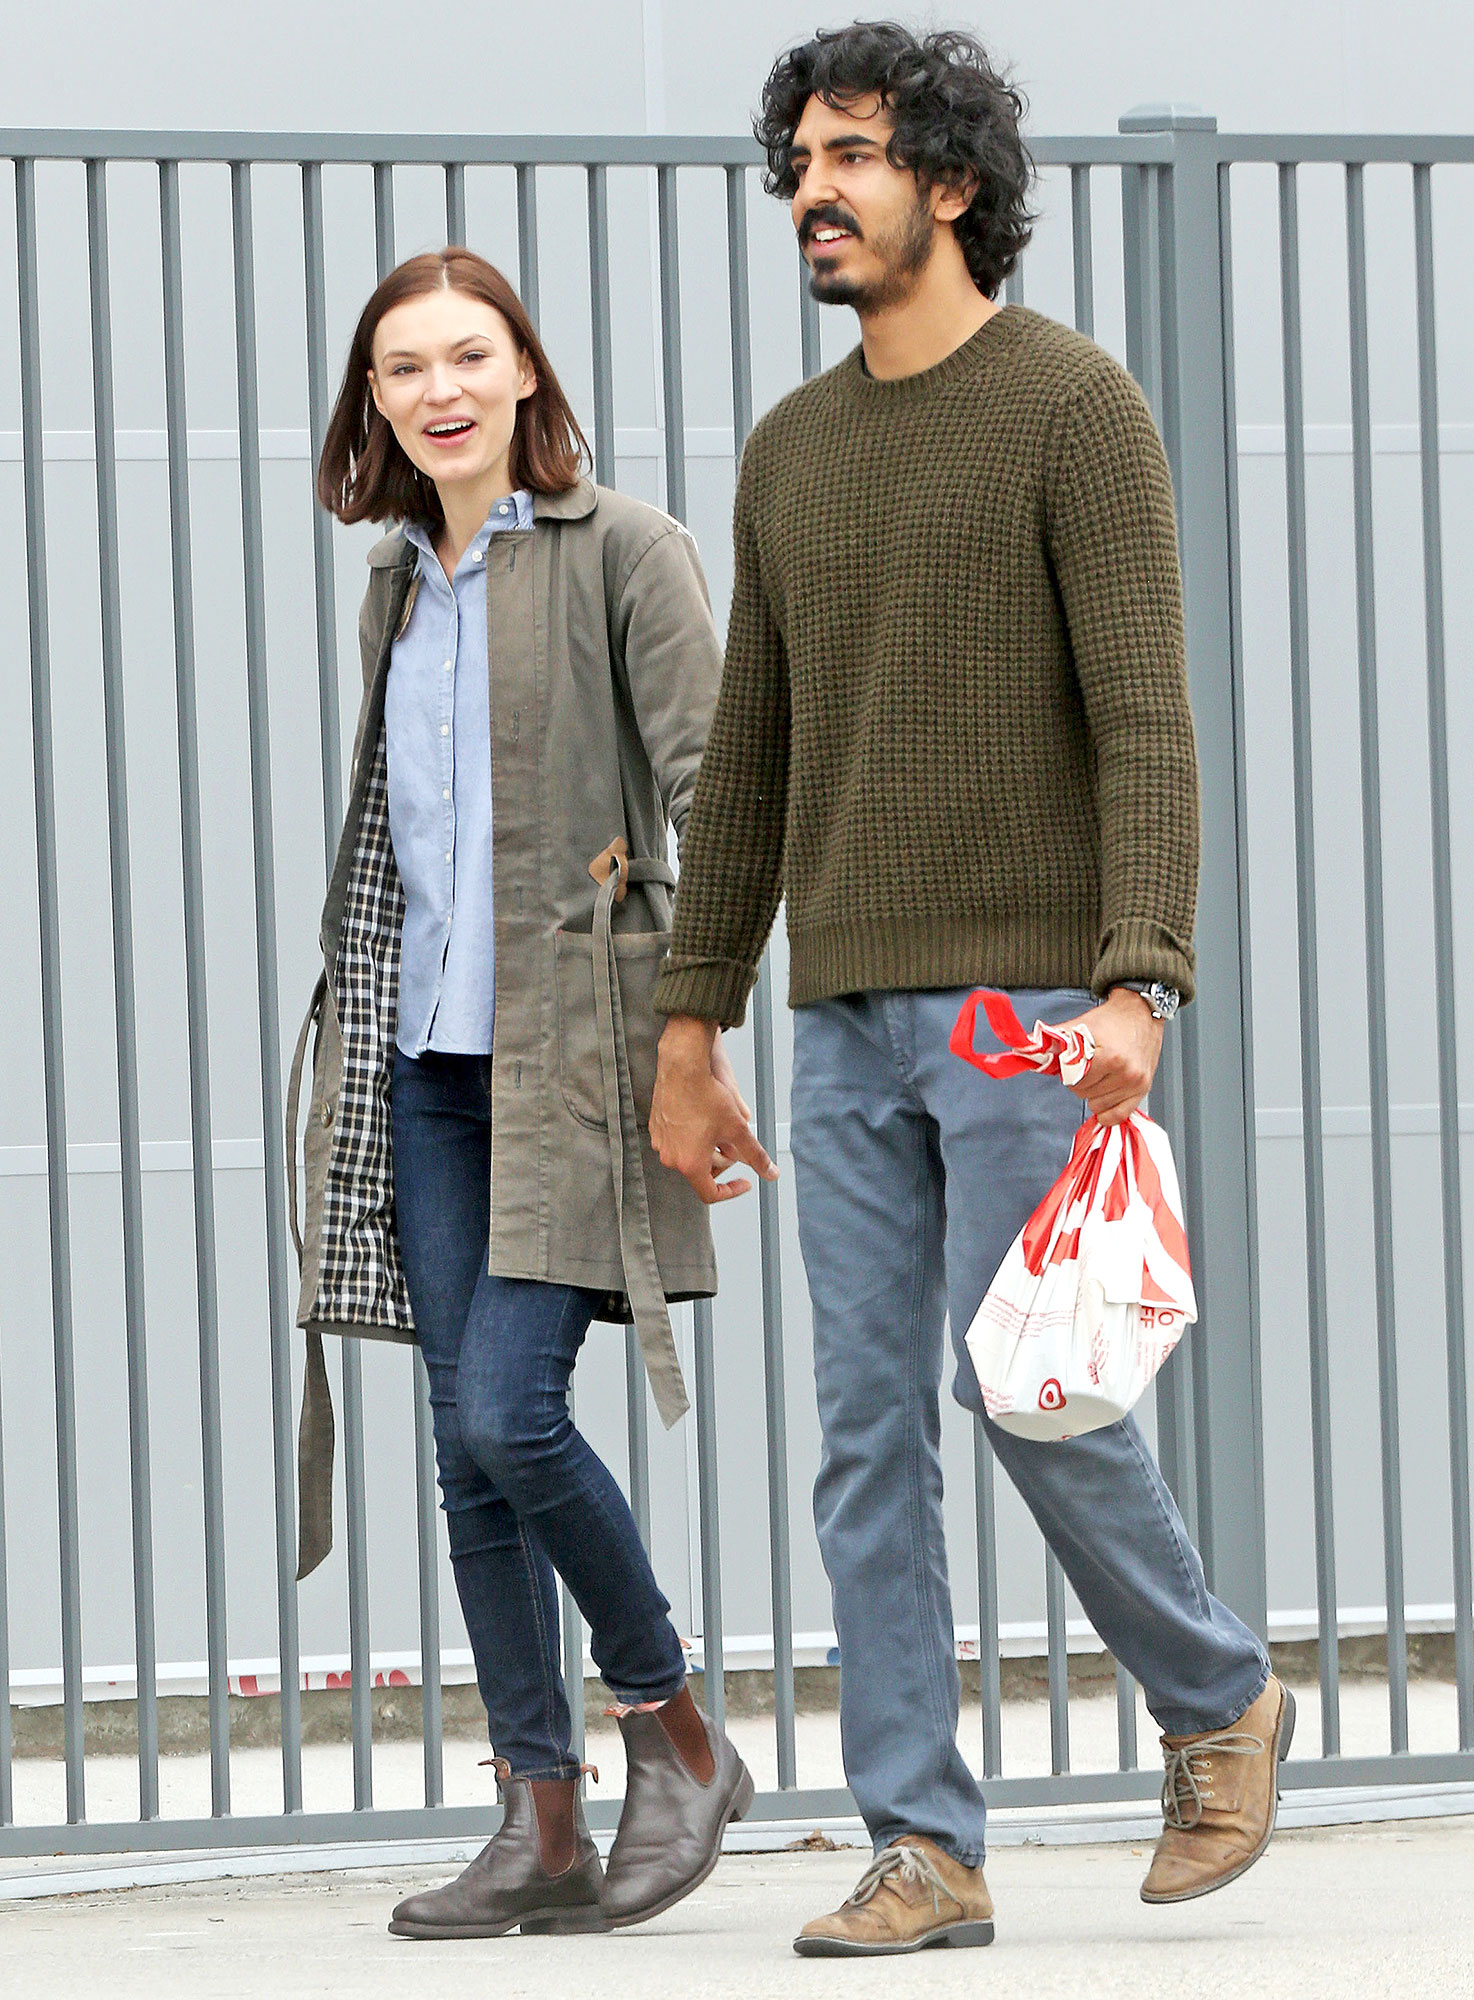 *EXCLUSIVE* Dev Patel spends his post- Oscar day out with a mystery girlfriend